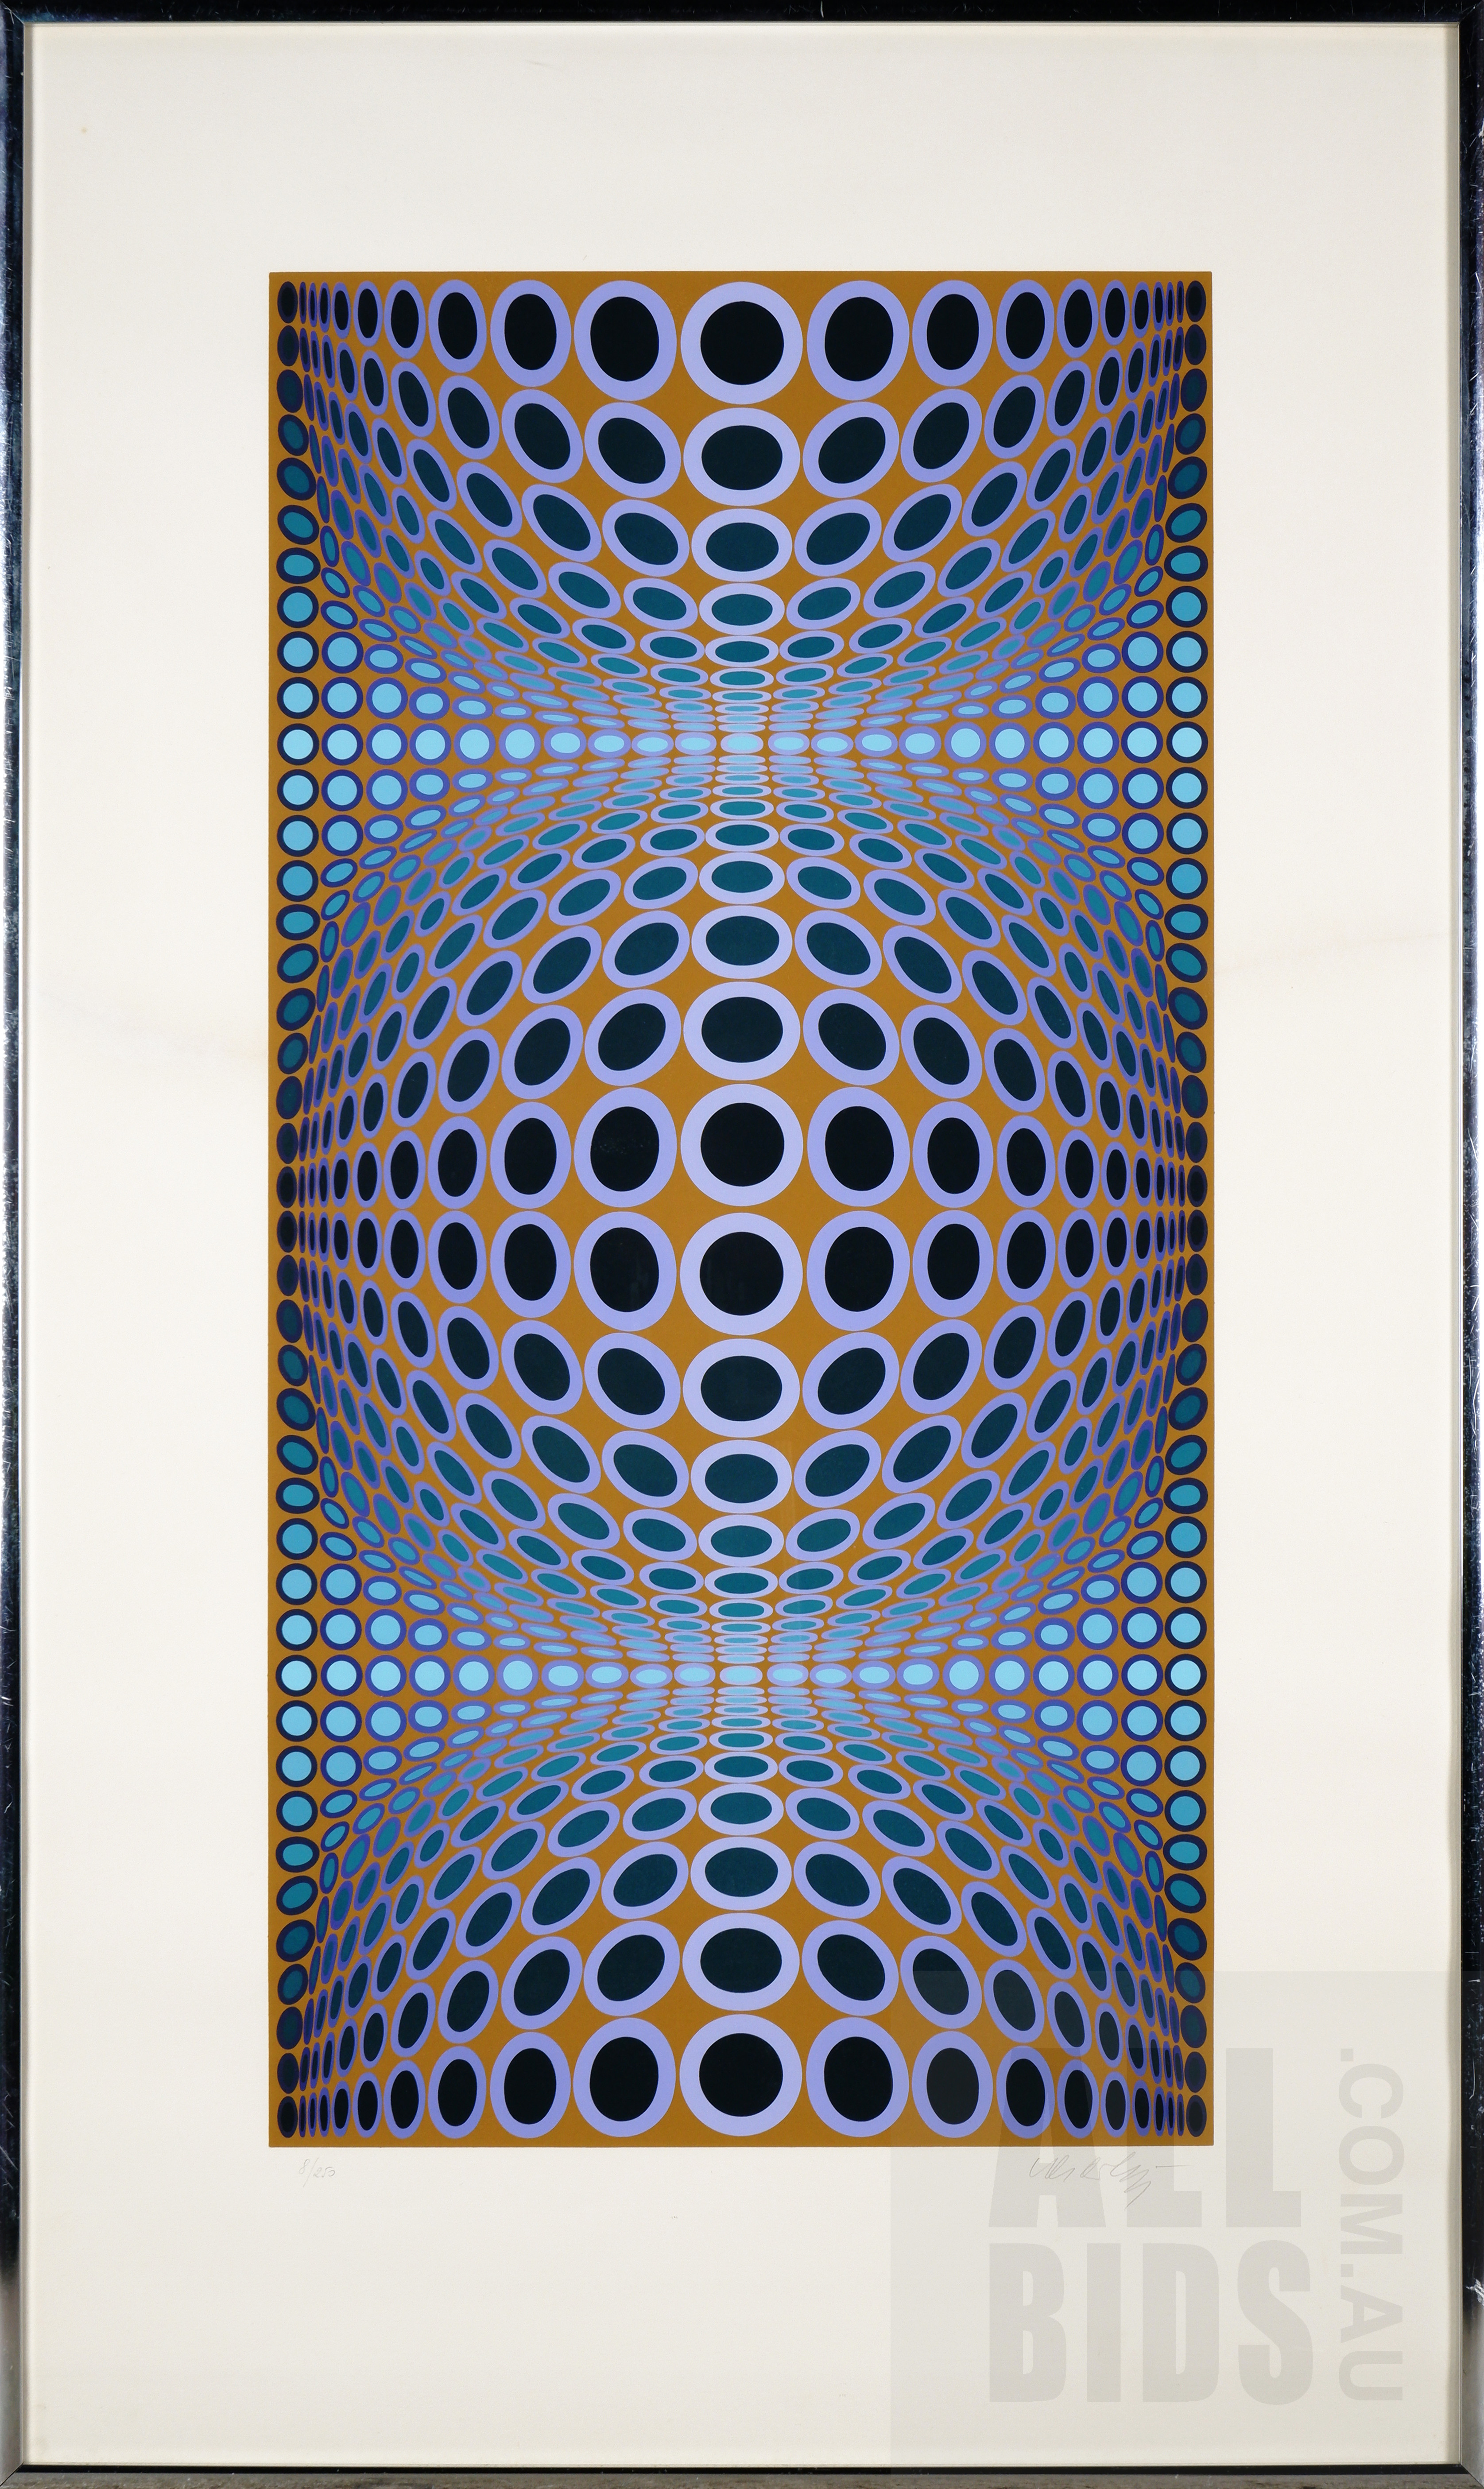 'Victor Vasarely (1906-1997, French), Blue Composition, Lithograph, 82 x 41 cm (image size)'